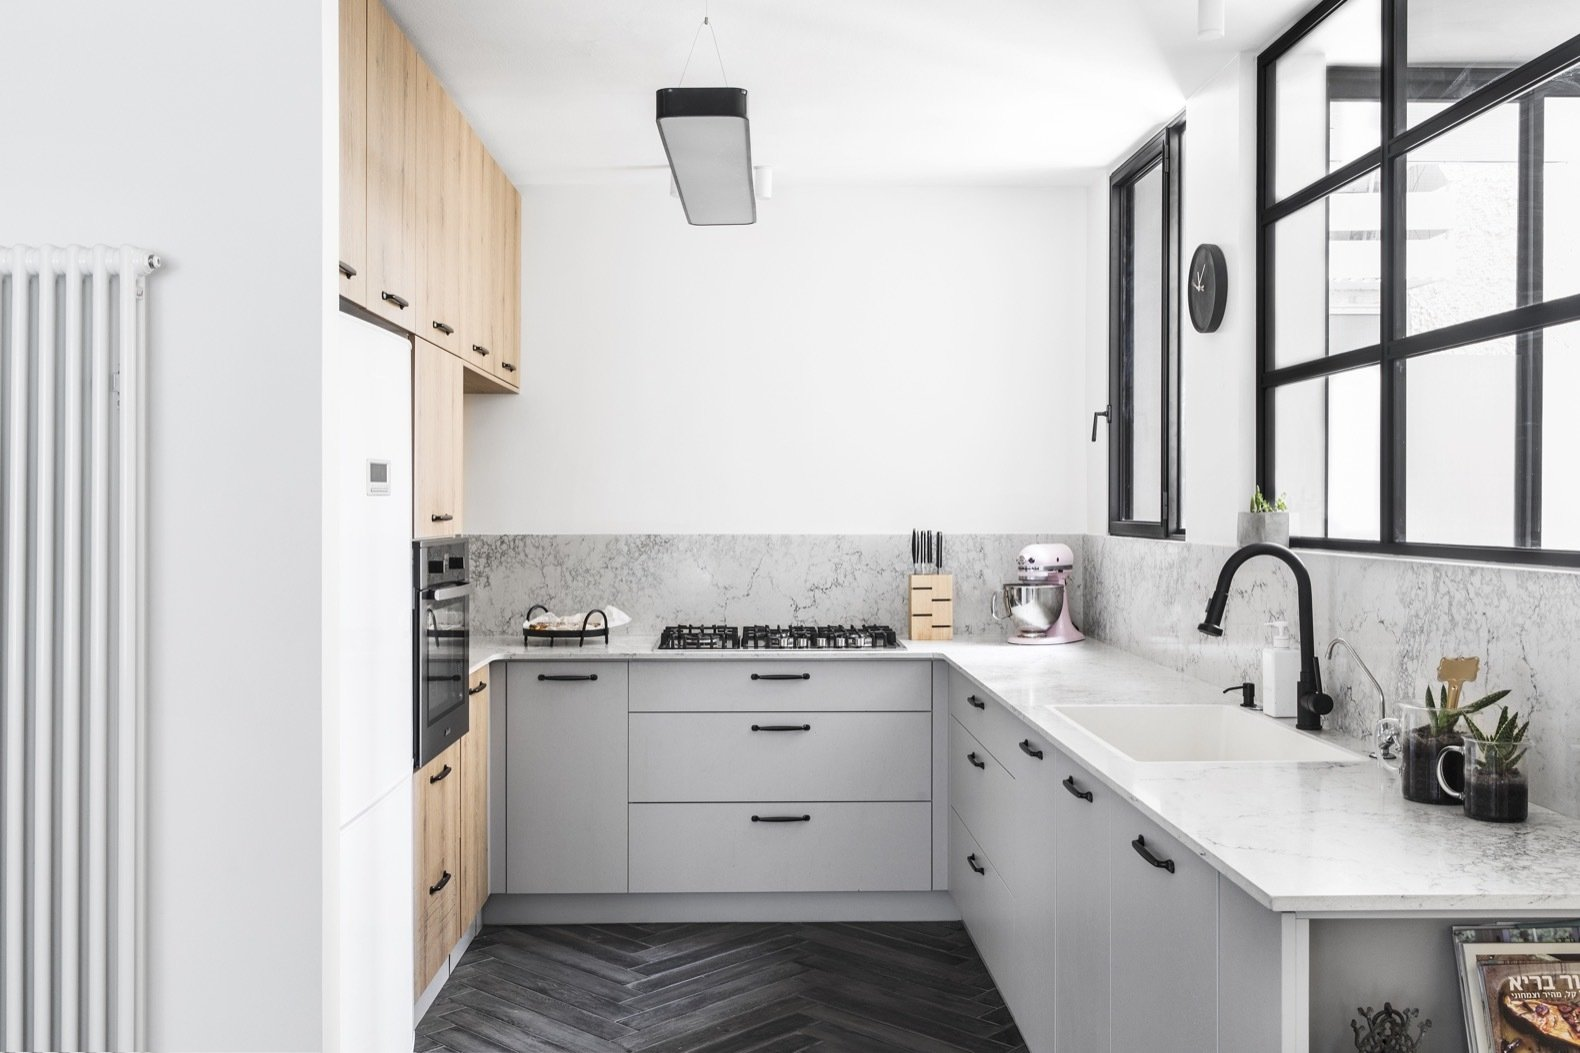 Kitchen, Porcelain Tile, Wall Oven, Ceiling, White, Cooktops, Refrigerator, Drop In, Engineered Quartz, Wood, and Accent Walls were torn down to create a bright, open kitchen.  Best Kitchen Ceiling Wall Oven Wood Accent Cooktops Porcelain Tile Photos from Budget Breakdown: A Stunning Apartment Revamp Mixes High and Low For Under $100K